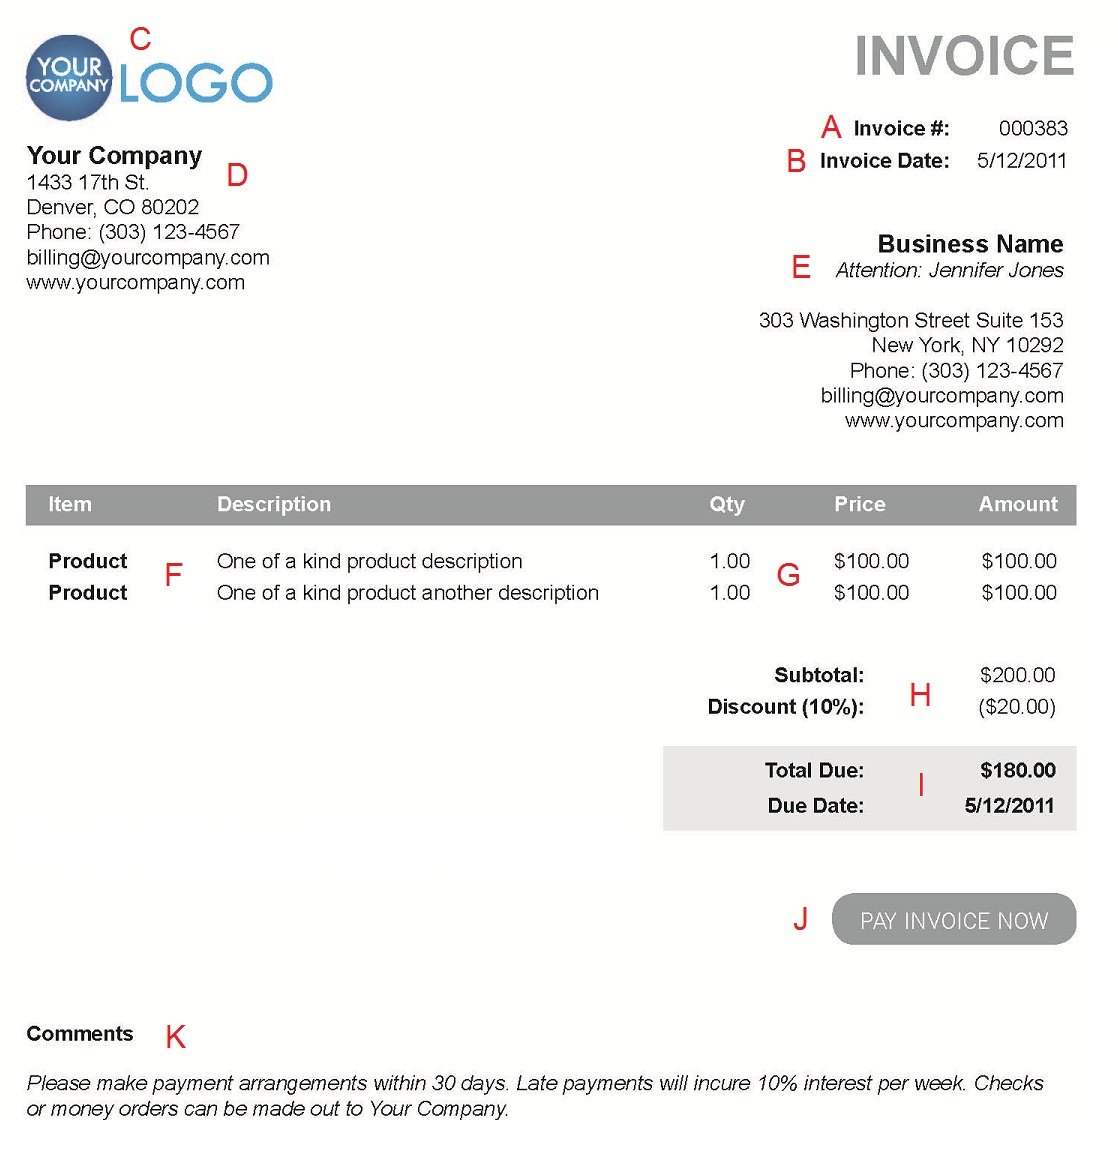 Weirdmailus  Surprising The  Different Sections Of An Electronic Payment Invoice With Engaging A  With Extraordinary Broward County Business Tax Receipt Application Also Walmart Receipt Savings In Addition Mini Receipt Printer And Cash Register Receipts As Well As Non Profit Receipt Additionally Generate Receipt From Paysimplecom With Weirdmailus  Engaging The  Different Sections Of An Electronic Payment Invoice With Extraordinary A  And Surprising Broward County Business Tax Receipt Application Also Walmart Receipt Savings In Addition Mini Receipt Printer From Paysimplecom